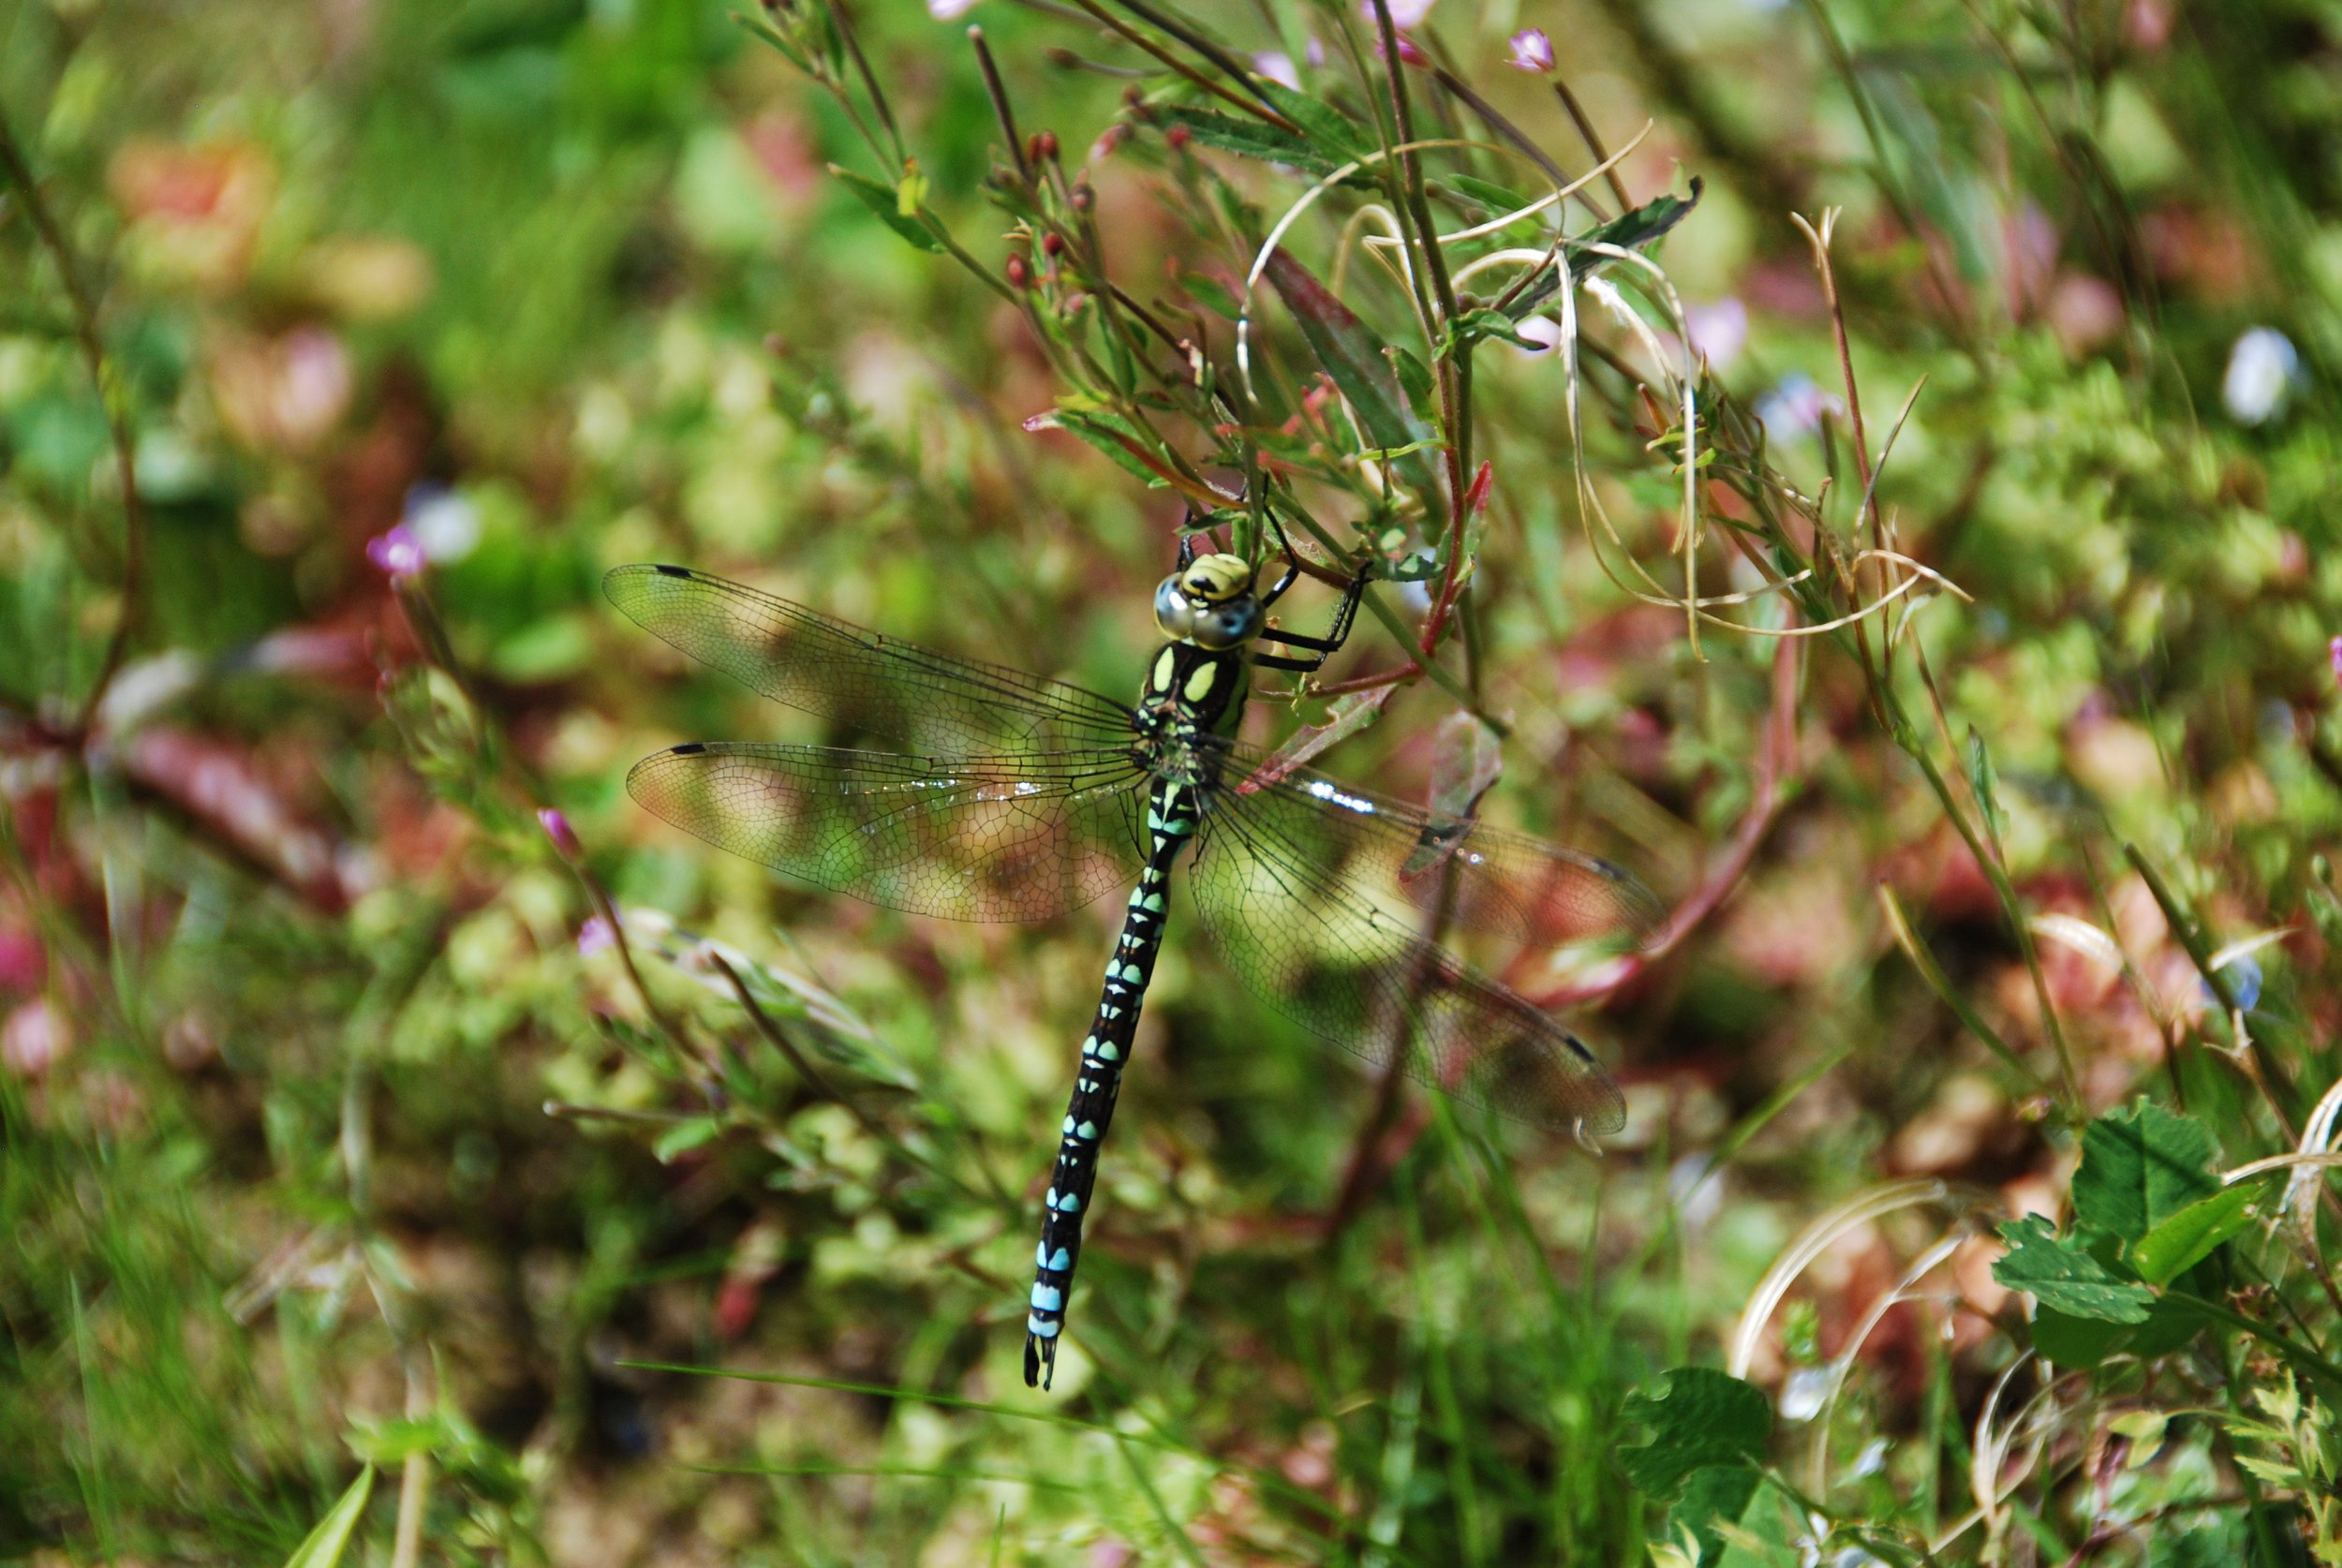 A common hawker dragonfly makes up just part of the vineyard wildlife!